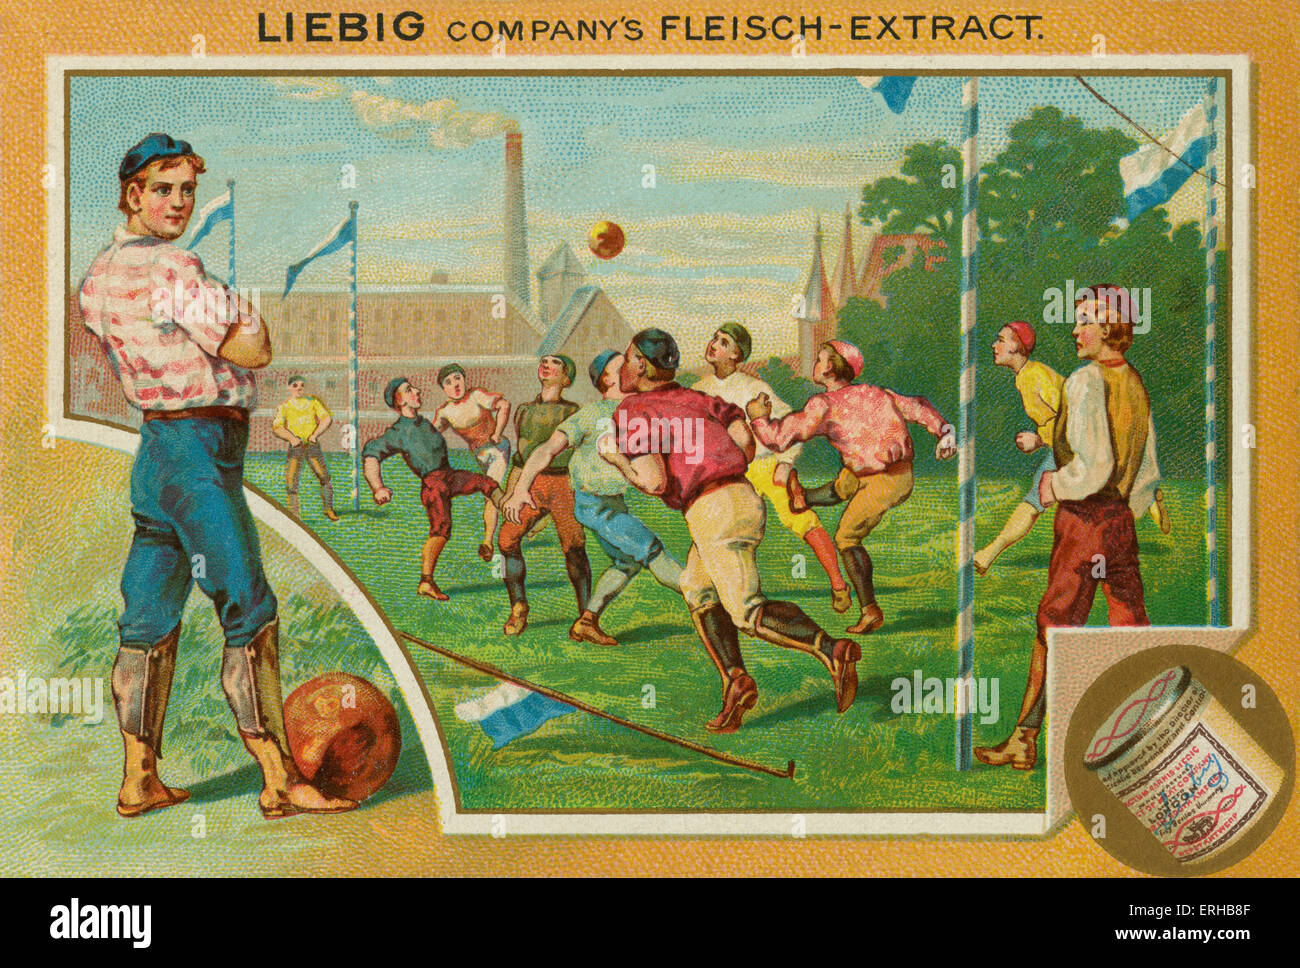 A football match.  Liebig card, Sports, 1896. - Stock Image